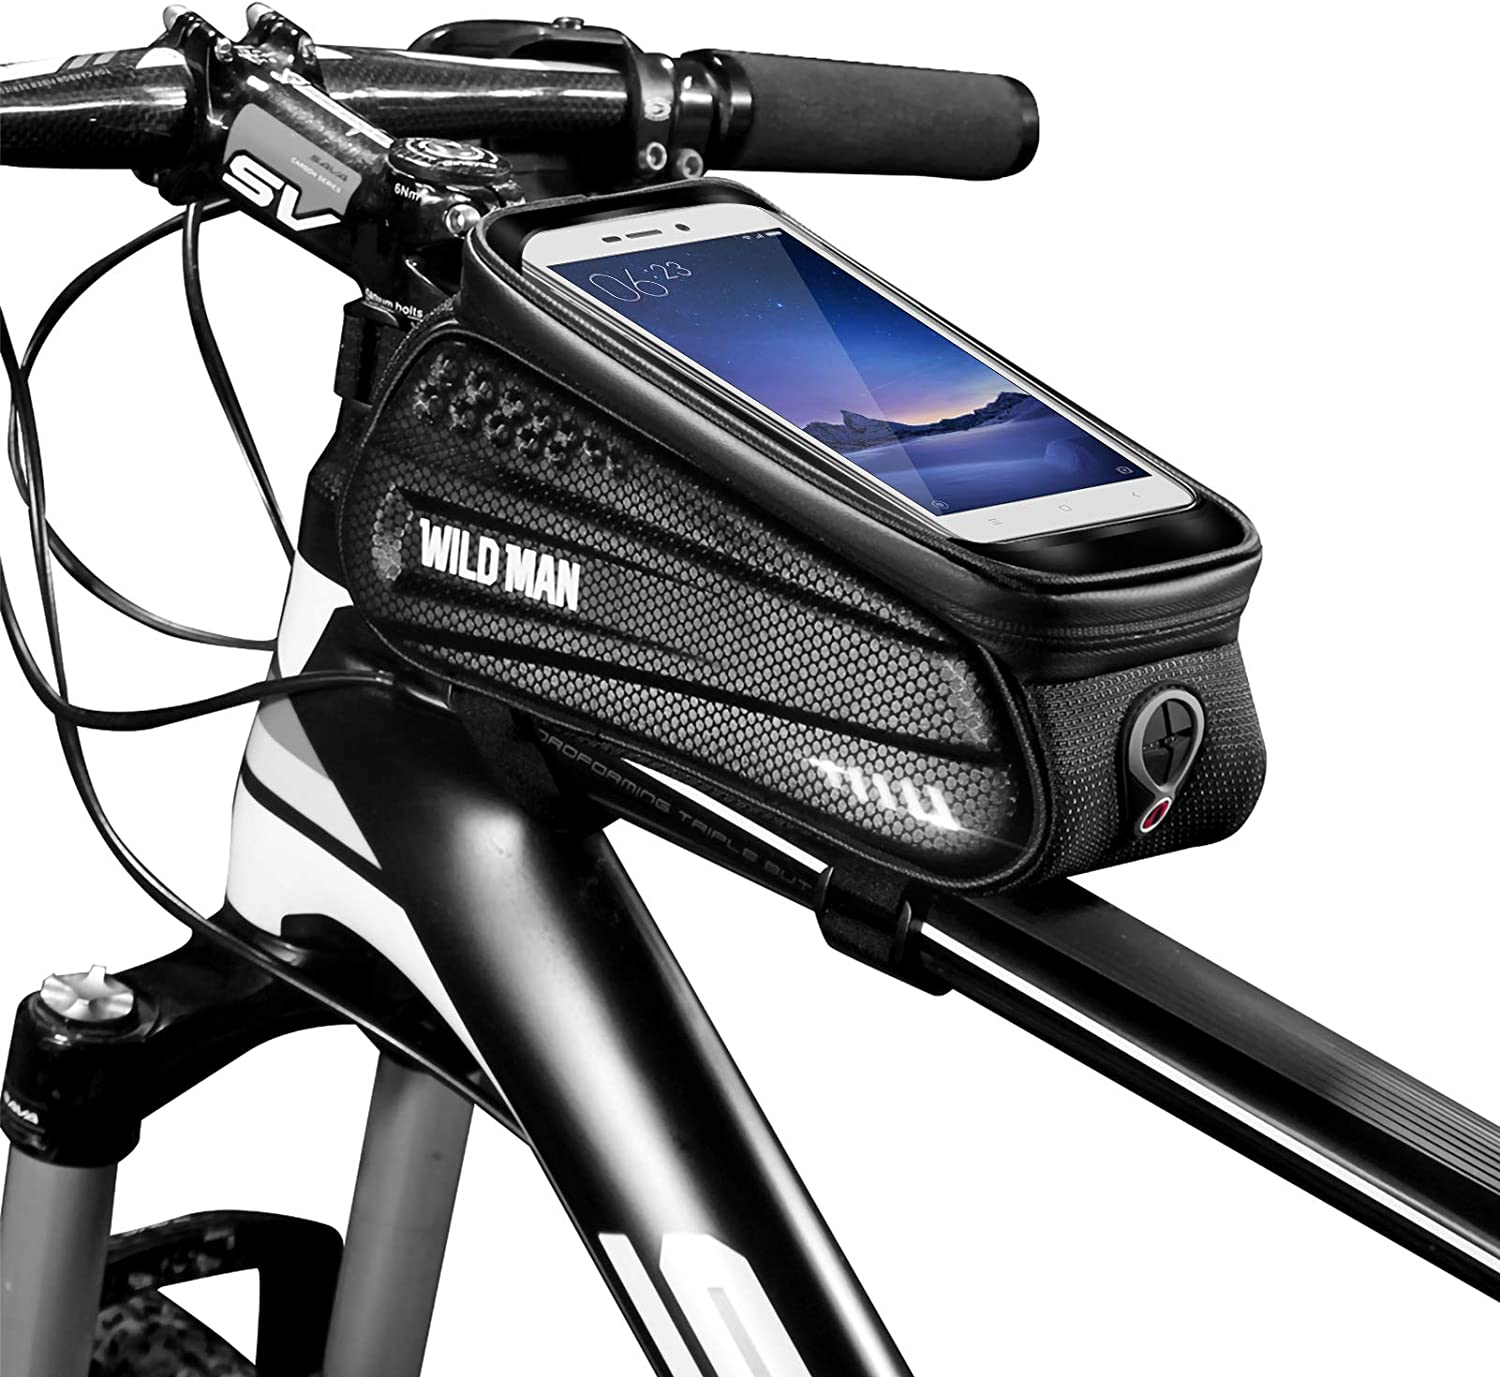 Number-one Bike Frame Bag Waterproof Bike Phone Mount Bag Bike Handlebar Bag with Touch Screen Headphone Hole Phone Holder for Cellphones up to 6.5 Inches Bicycle Front Frame Bag